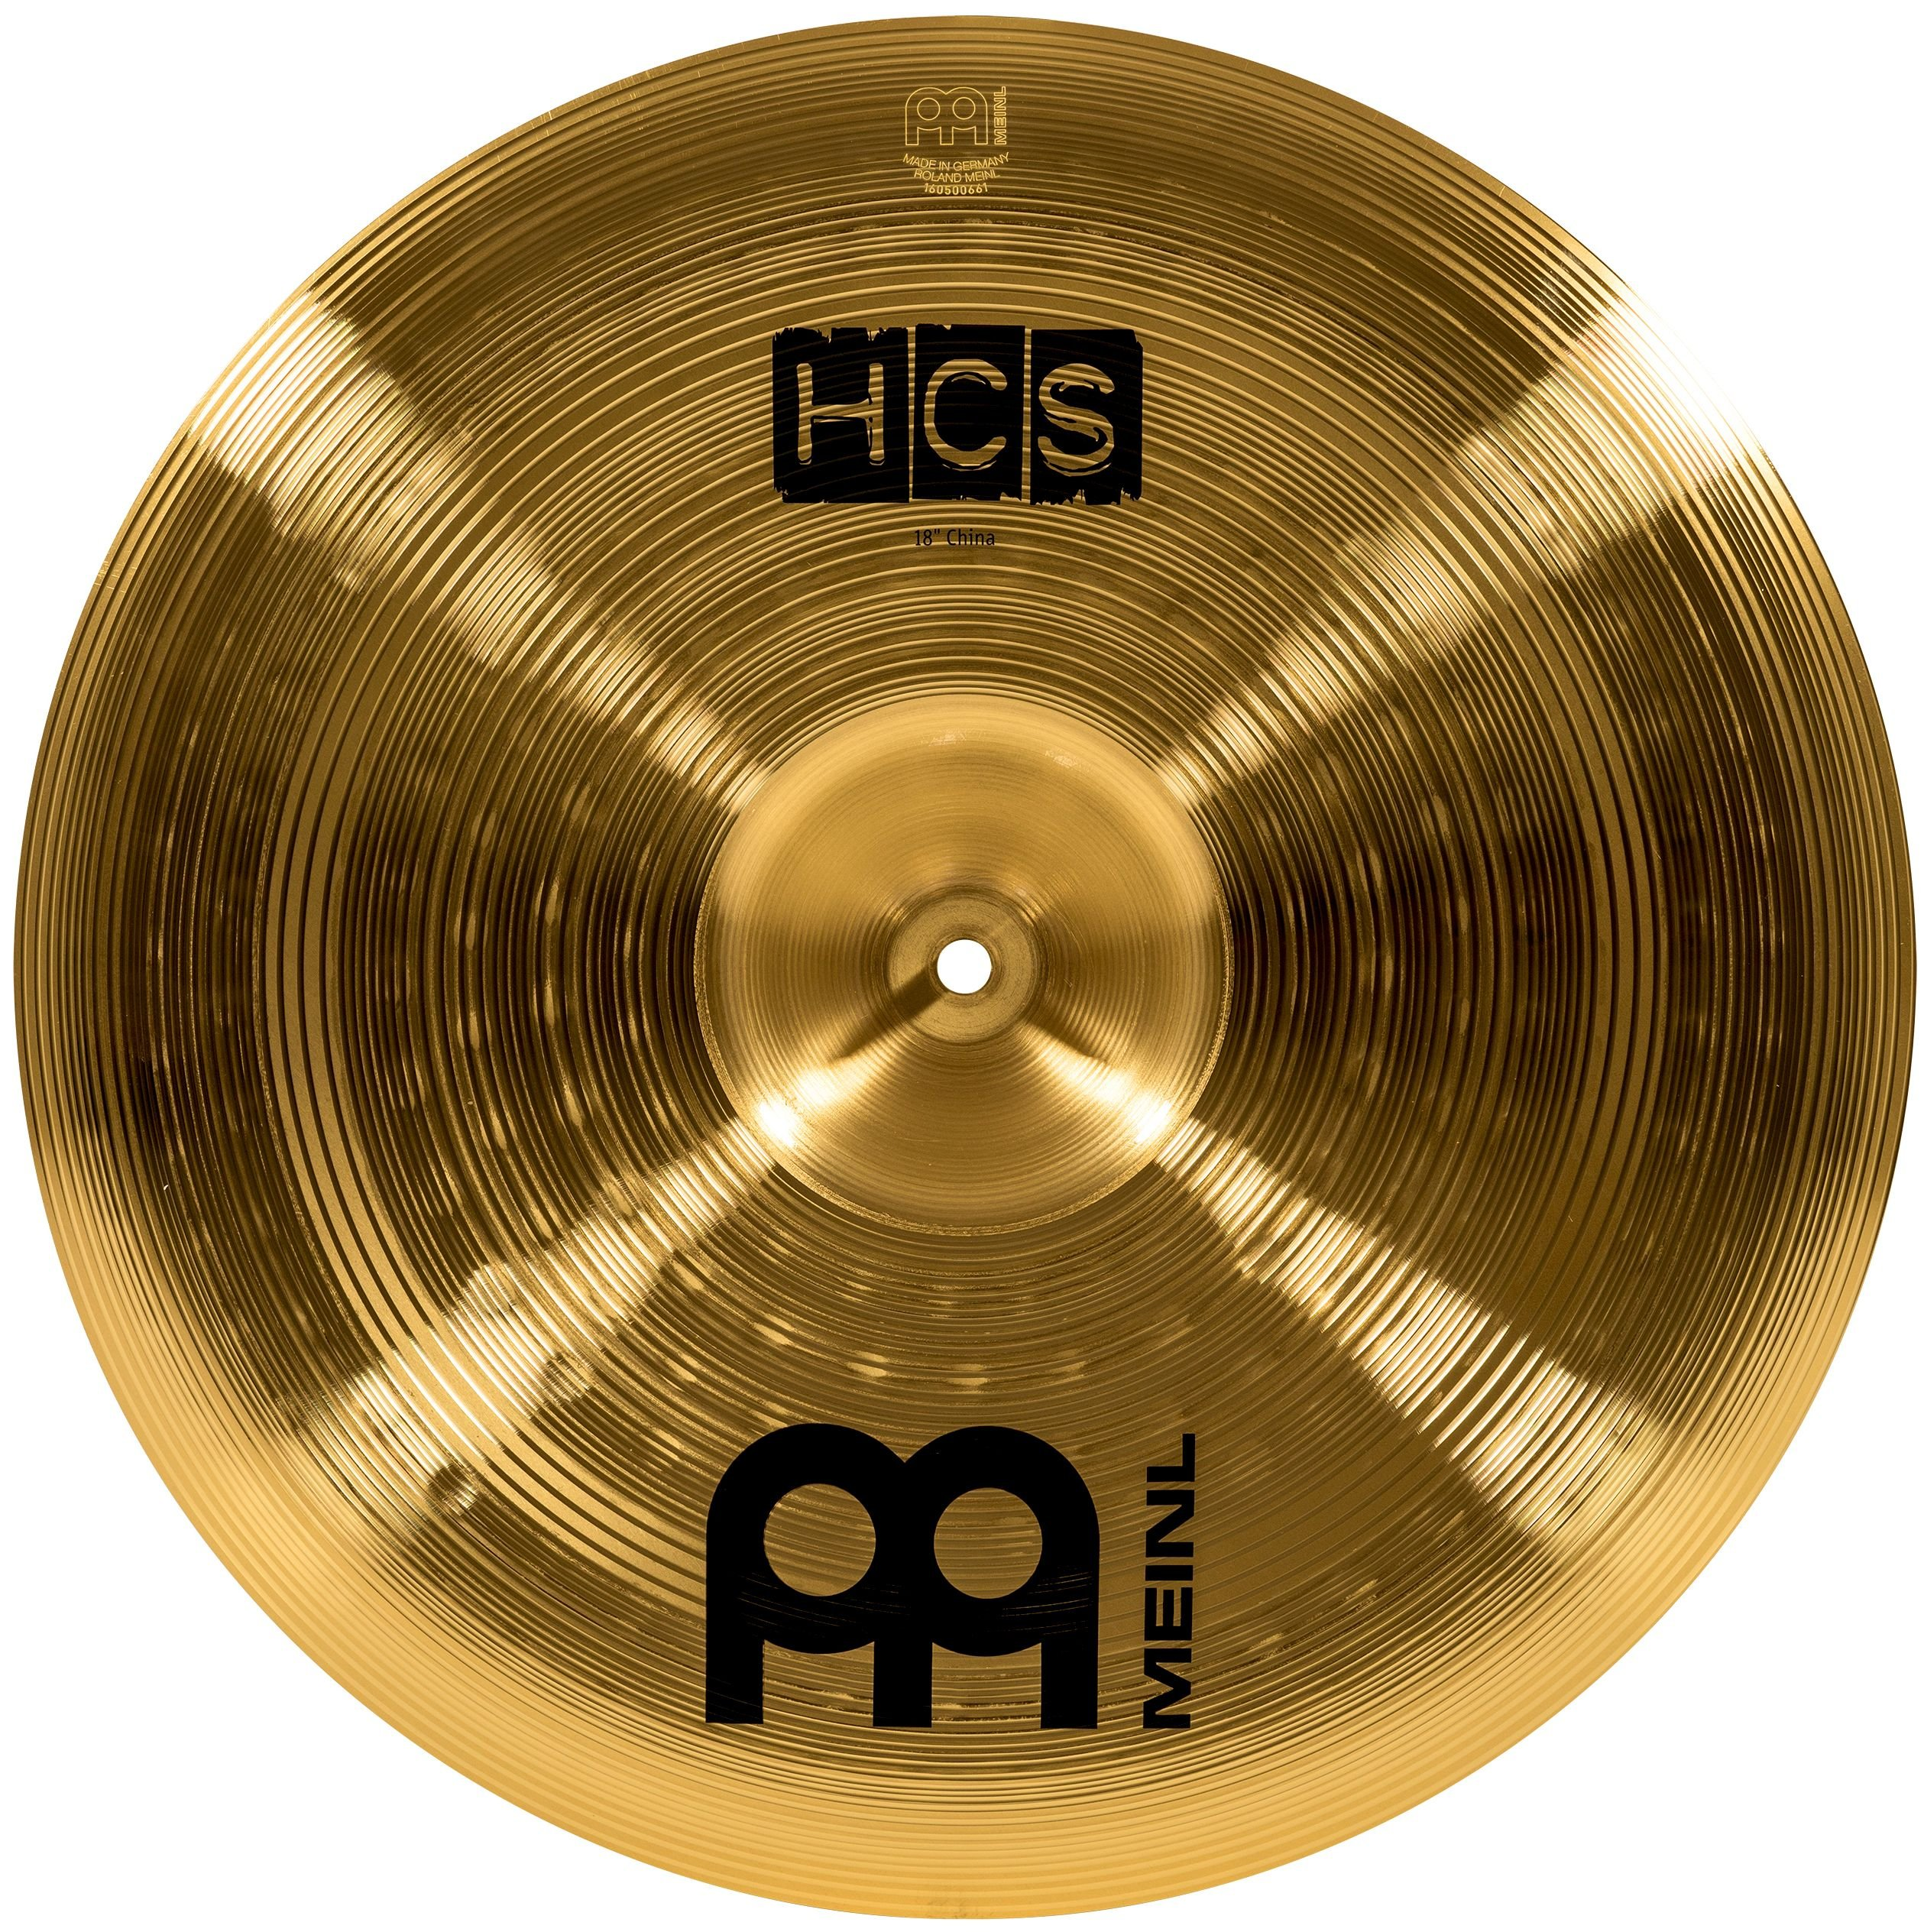 Meinl 18'' China Cymbal - HCS Traditional Finish Brass for Drum Set, Made In Germany, 2-YEAR WARRANTY (HCS18CH) by Meinl Percussion